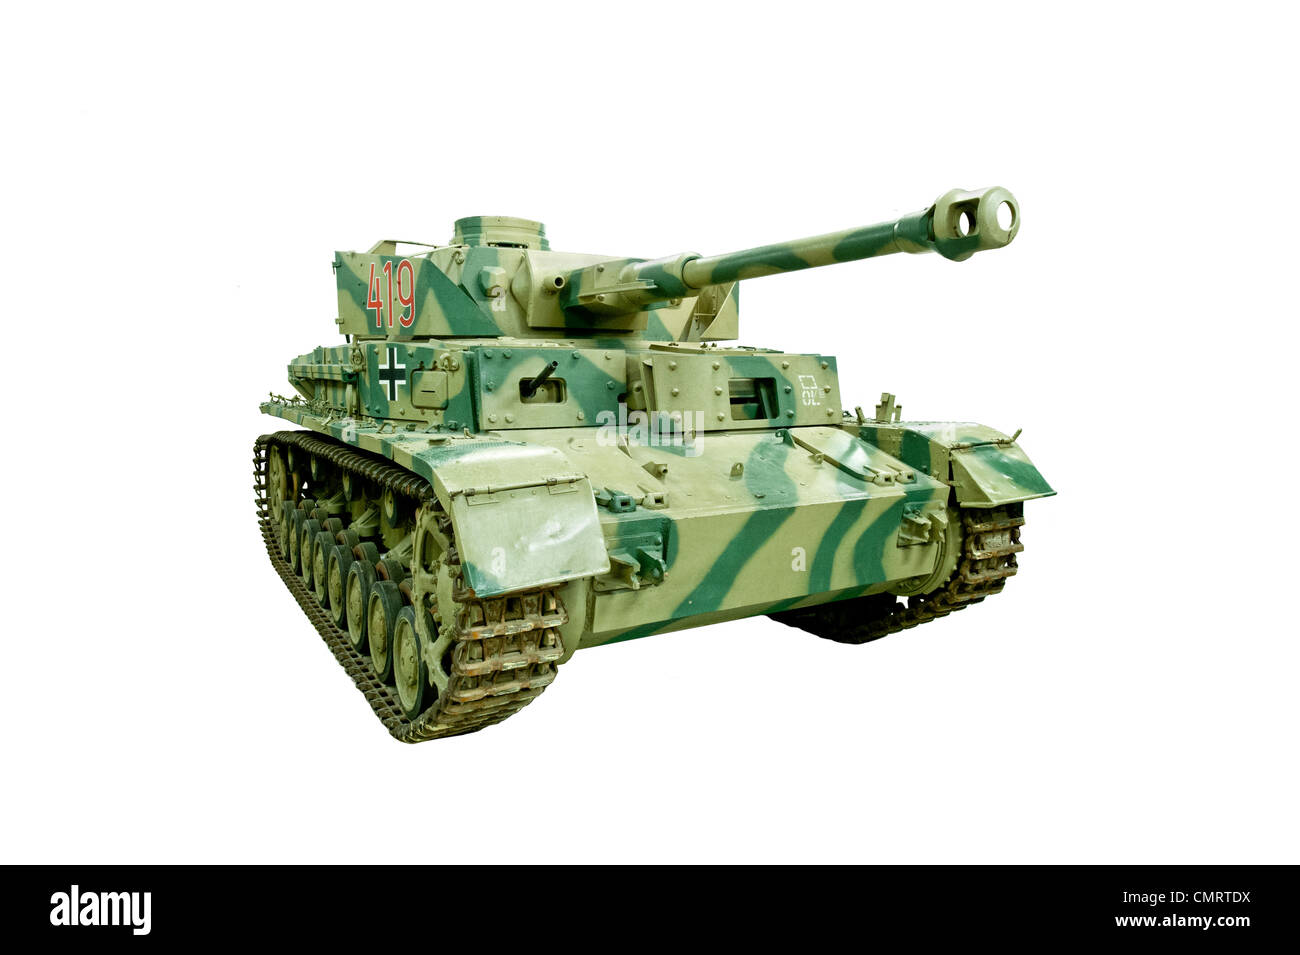 A cut out of  Panzerkampfwagen IV Tank, used by Nazi German forces during WW2 - Stock Image